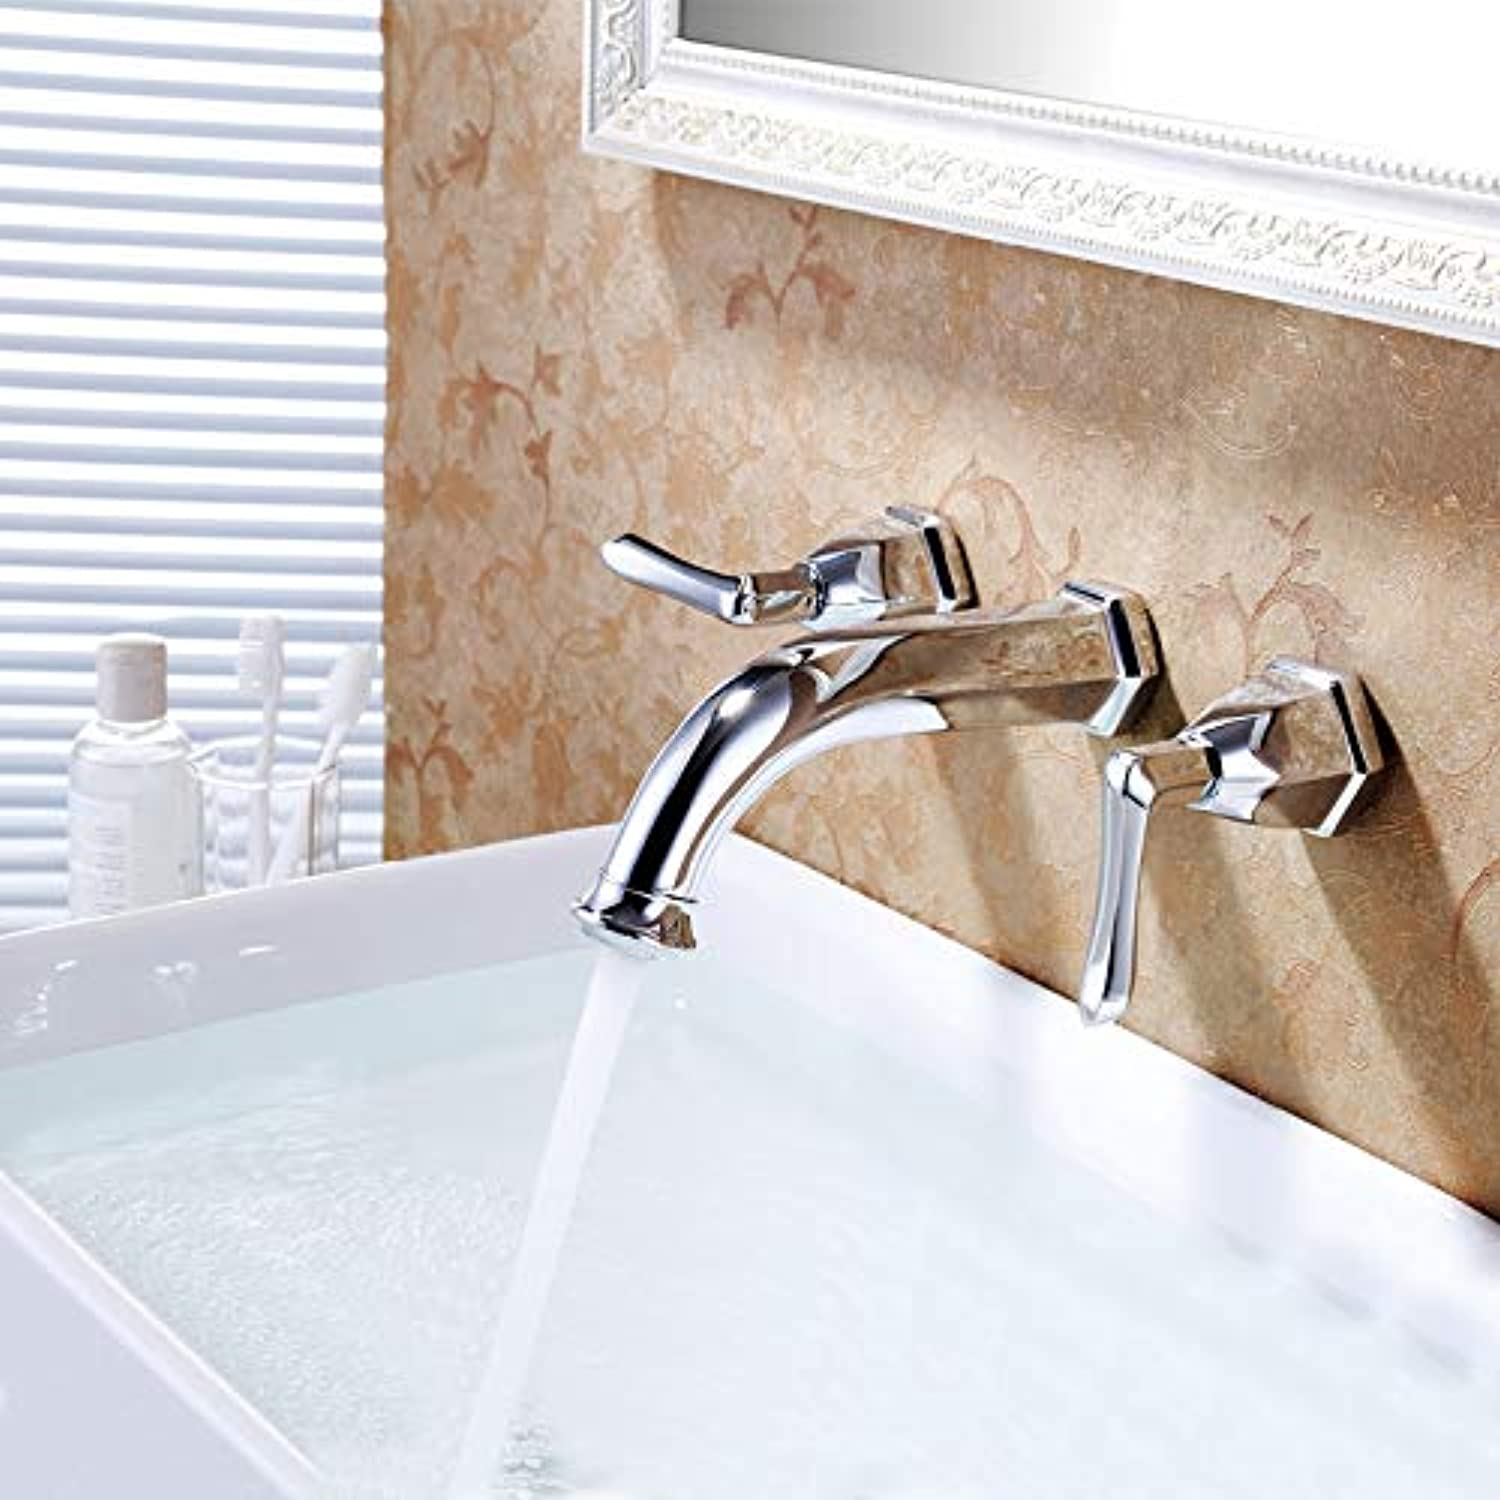 Hlluya Professional Sink Mixer Tap Kitchen Faucet The golden flush mount faucet hot and cold taps gold plated antique ORB into wall hydrants Tf8020,tf8020 Chrome color